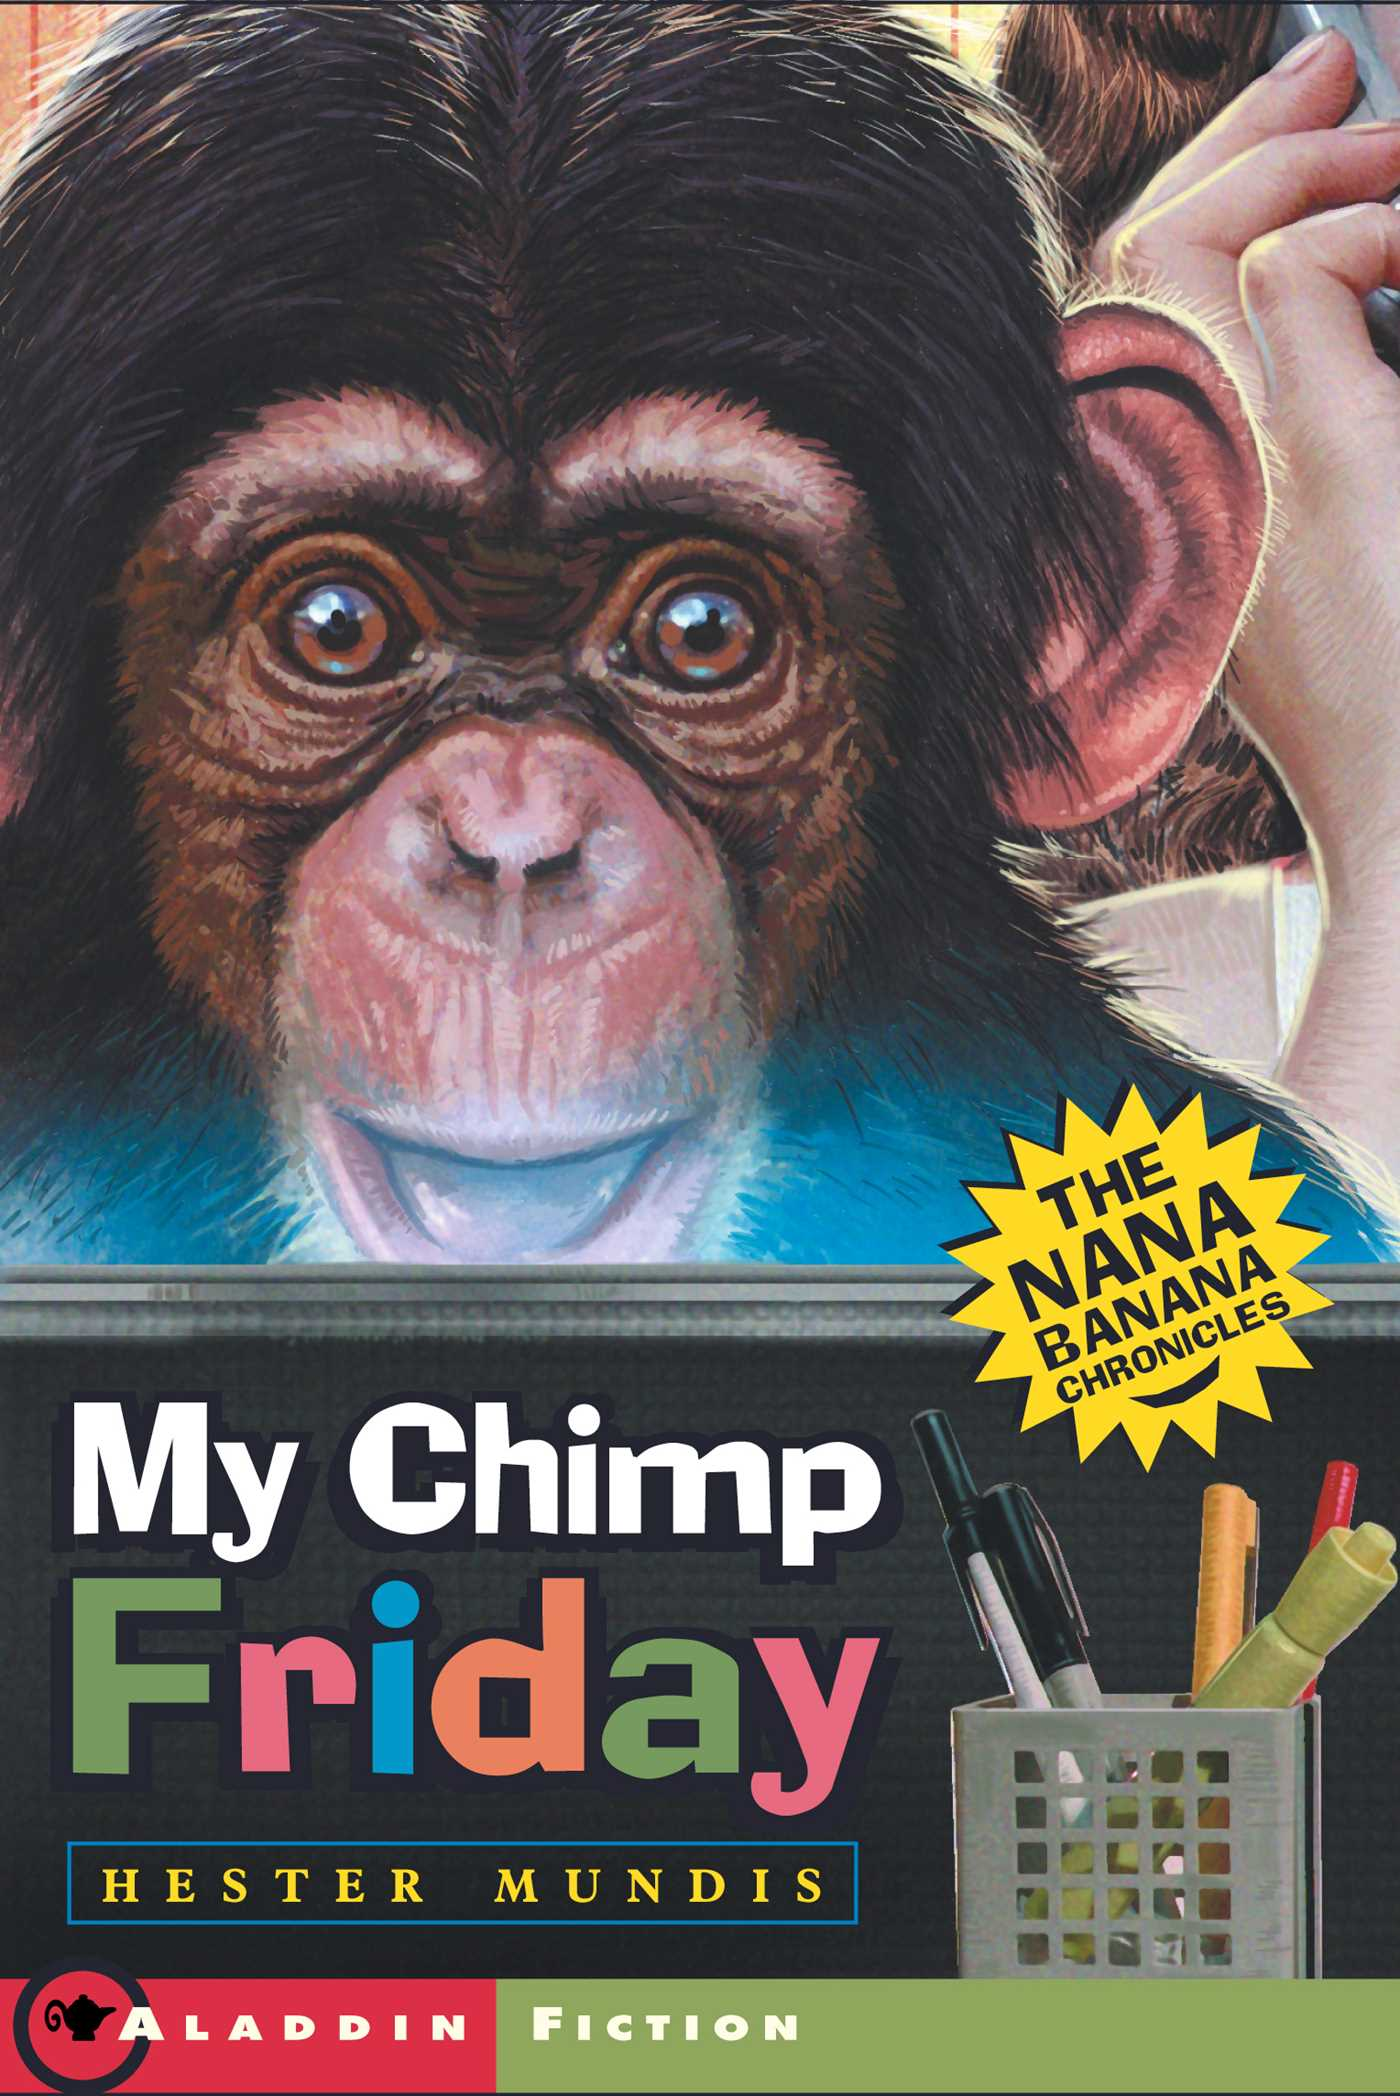 My chimp friday 9781442446304 hr